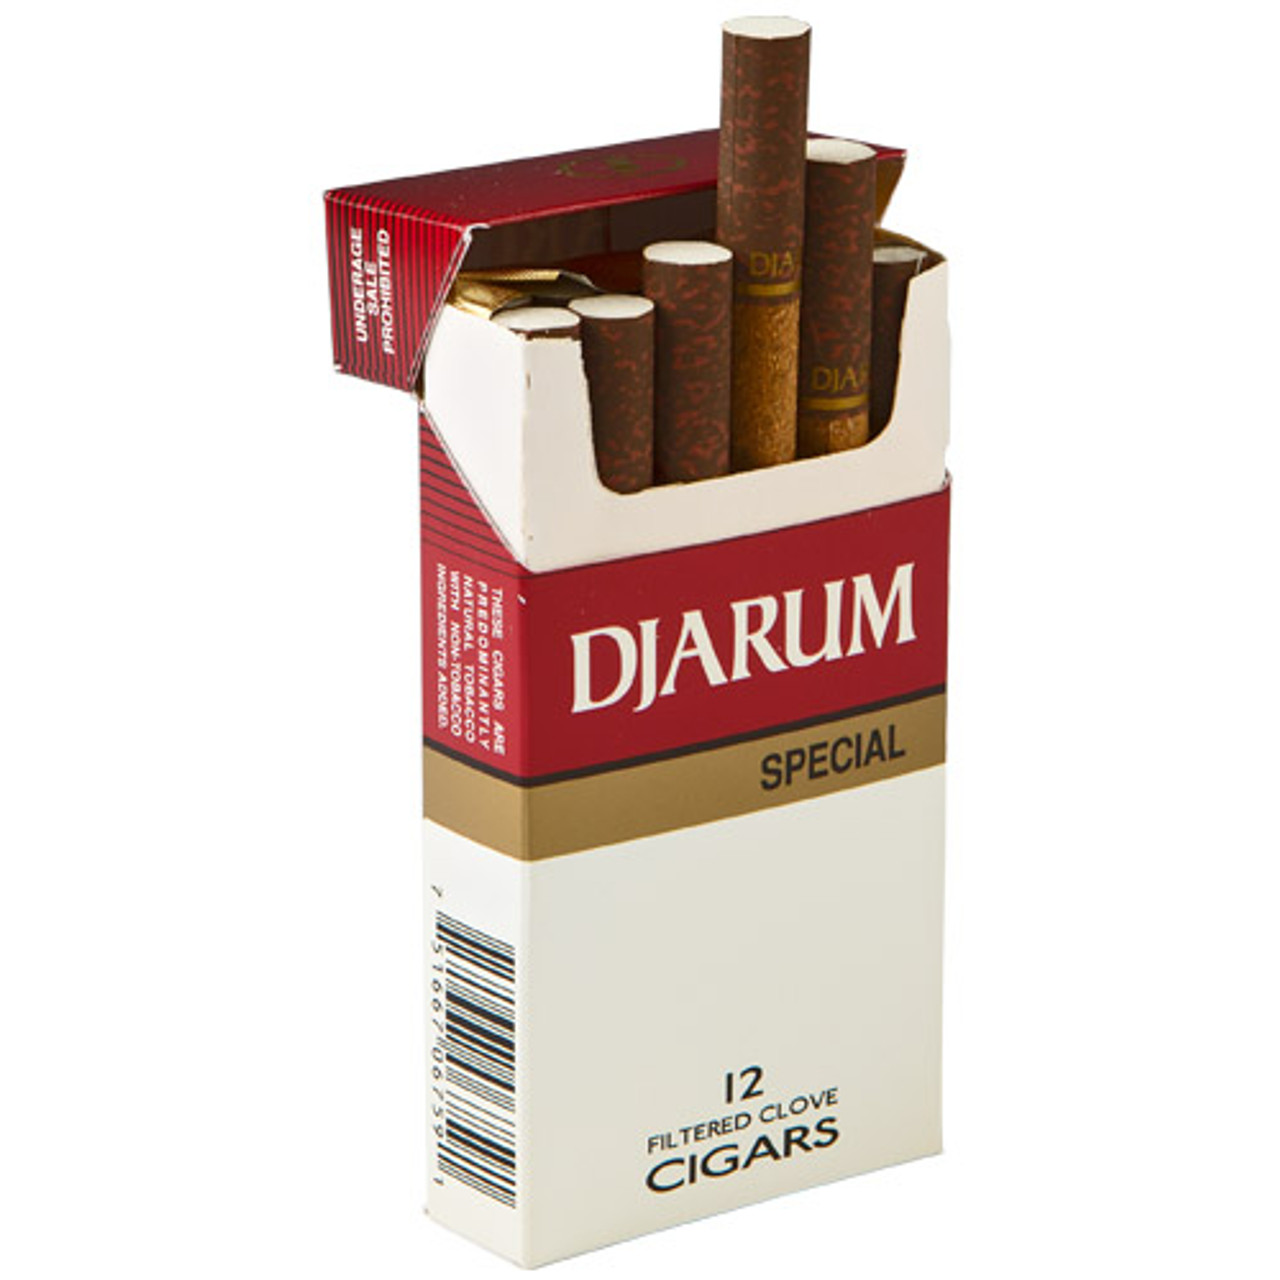 Djarum Filtered Special Cigars (10 Packs of 12) - Natural